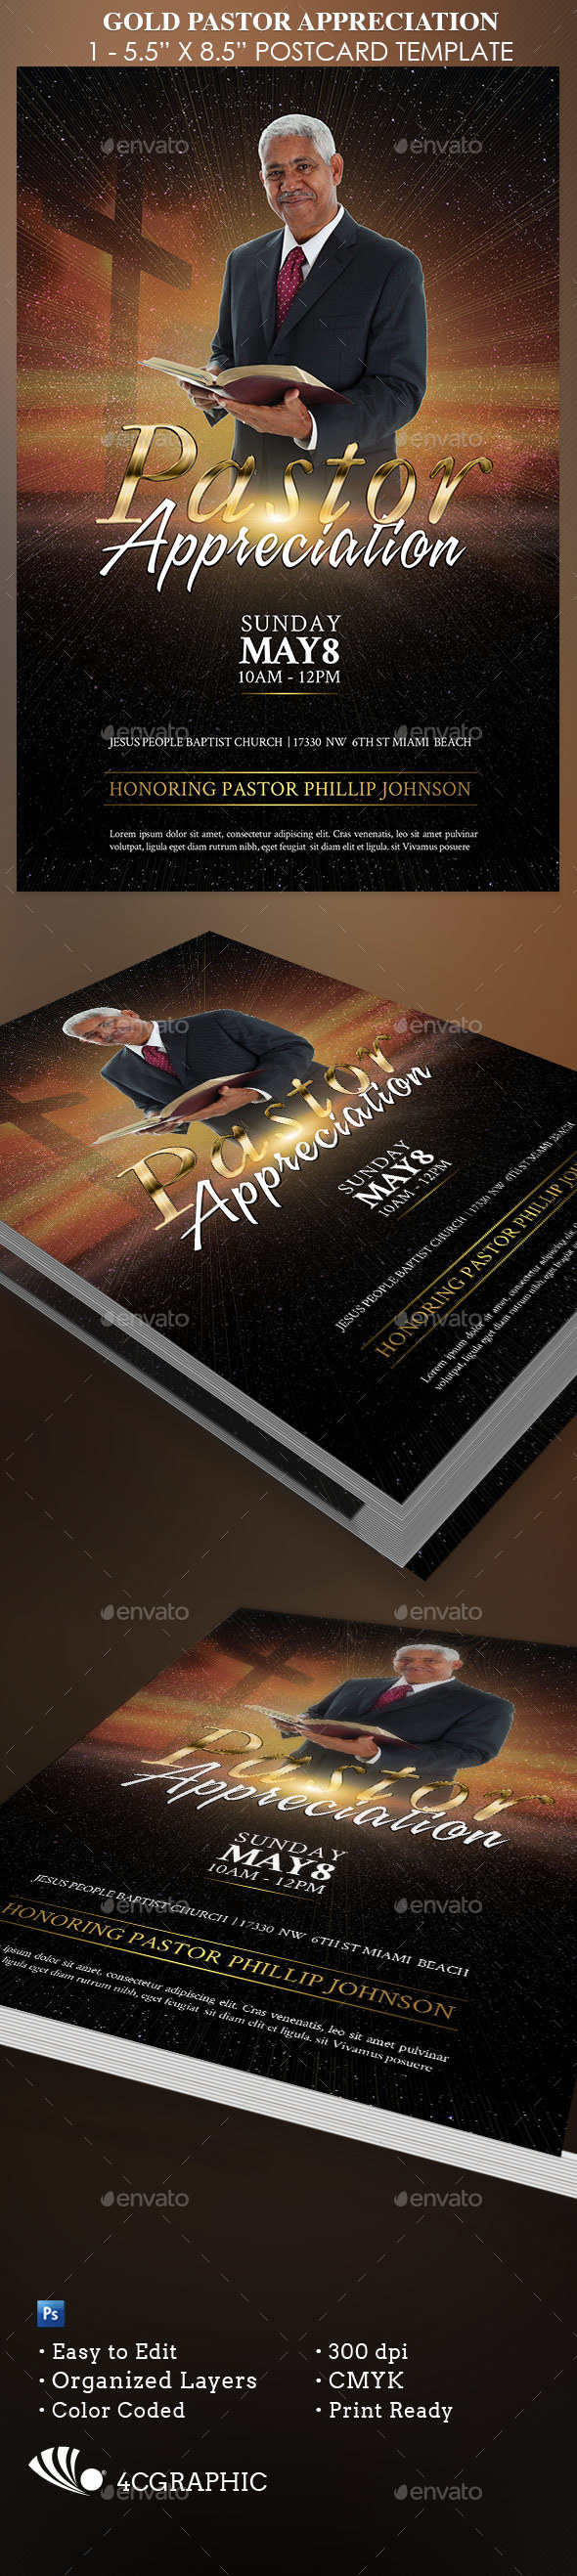 Gold Pastor Appreciation - Church Flyers